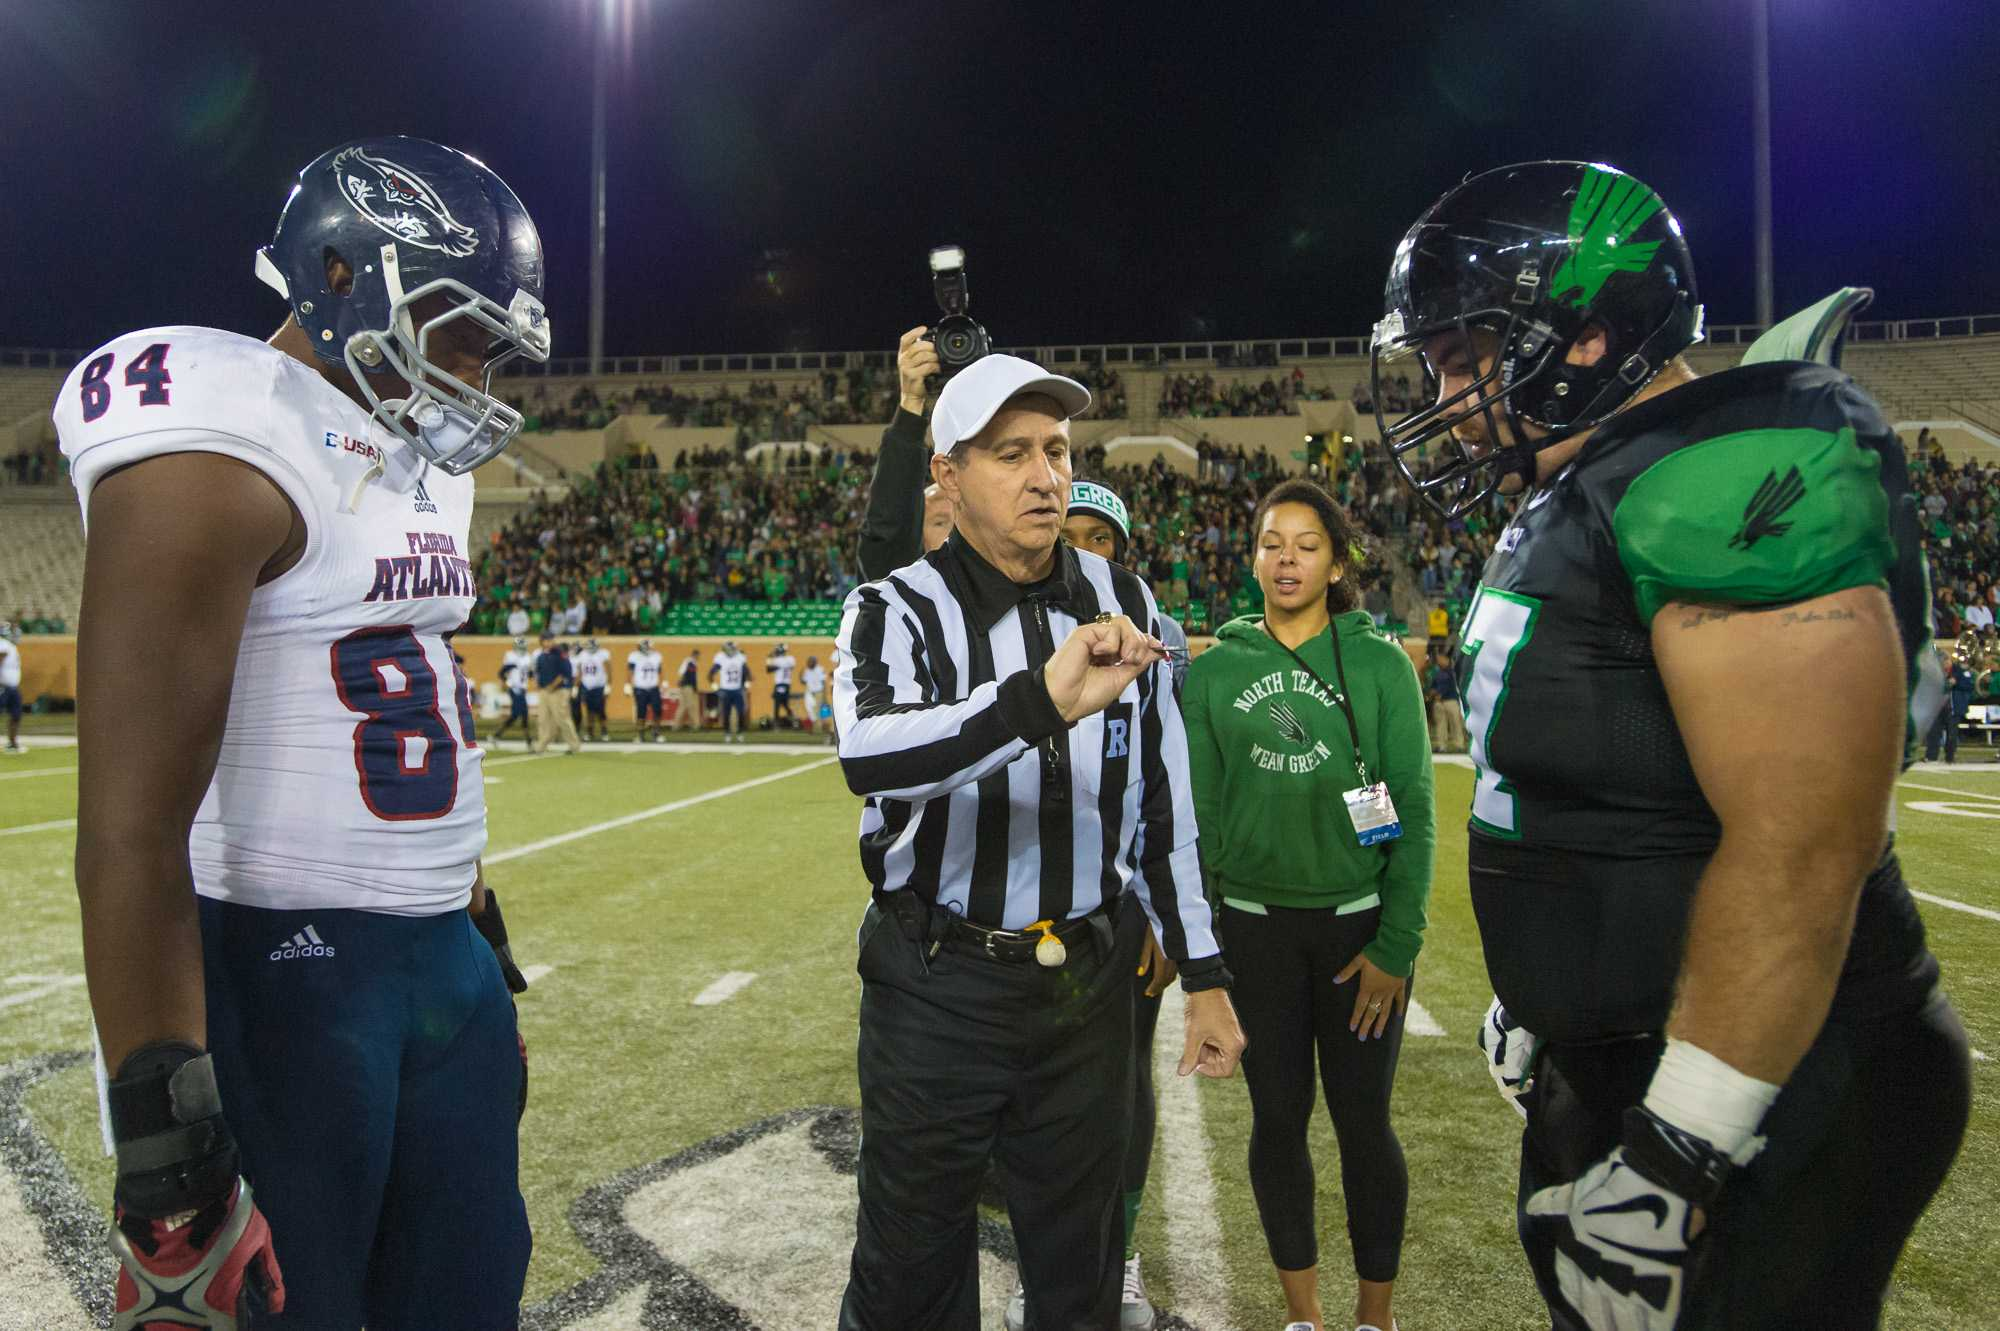 [ Max Jackson | Photo Editor ] The coin toss before FAU faced off with North Texas. Pictured is FAU captain and tight end Alex Deleon.FAU won the toss and choose to defer until the second half.